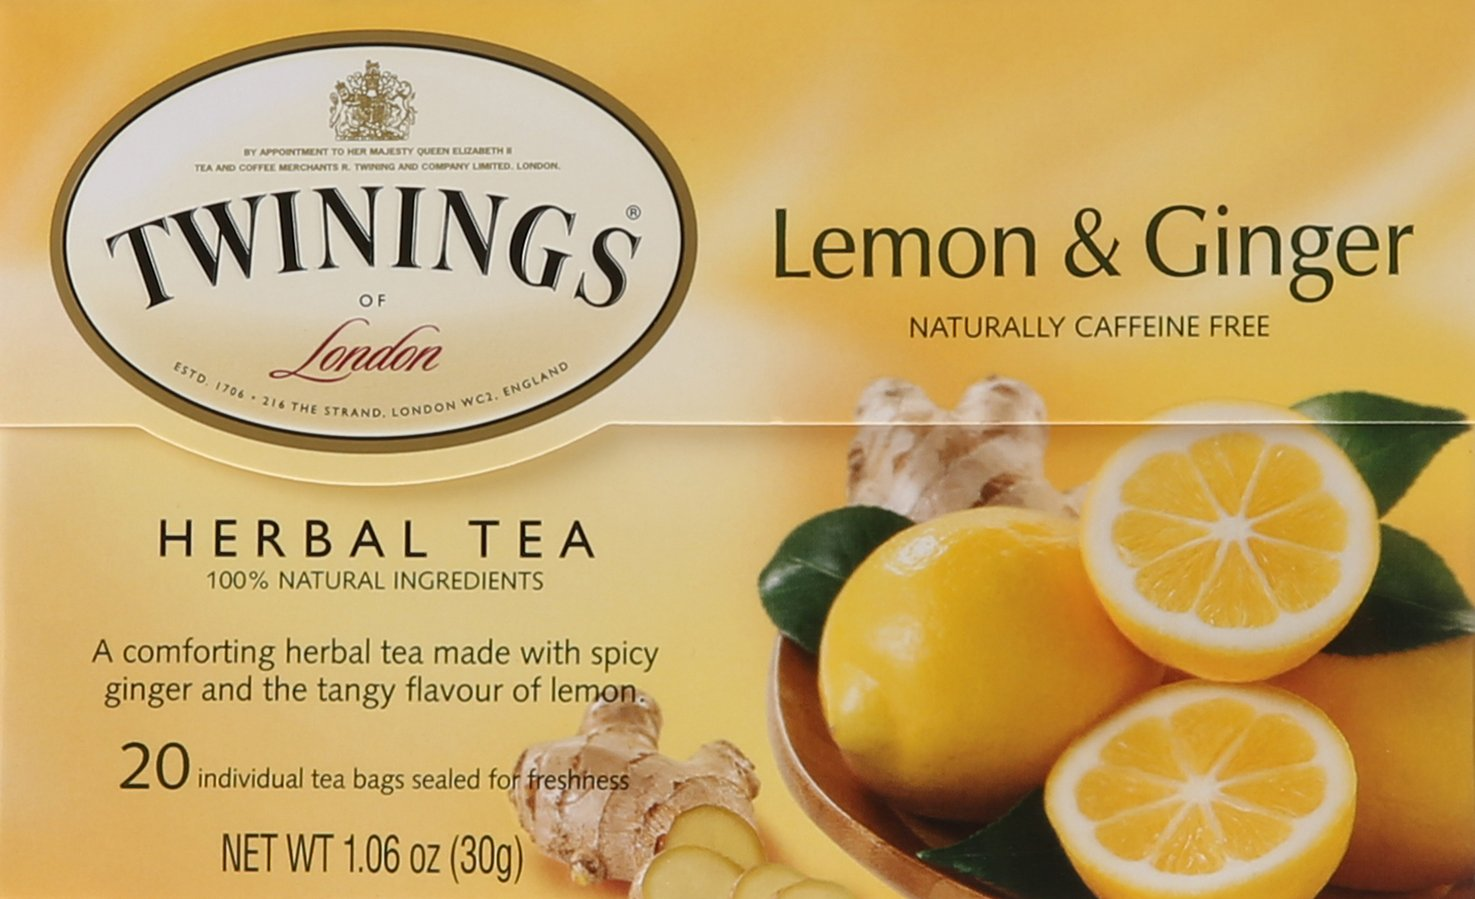 Twinings of London Lemon & Ginger Herbal Tea Bags, 20 Count